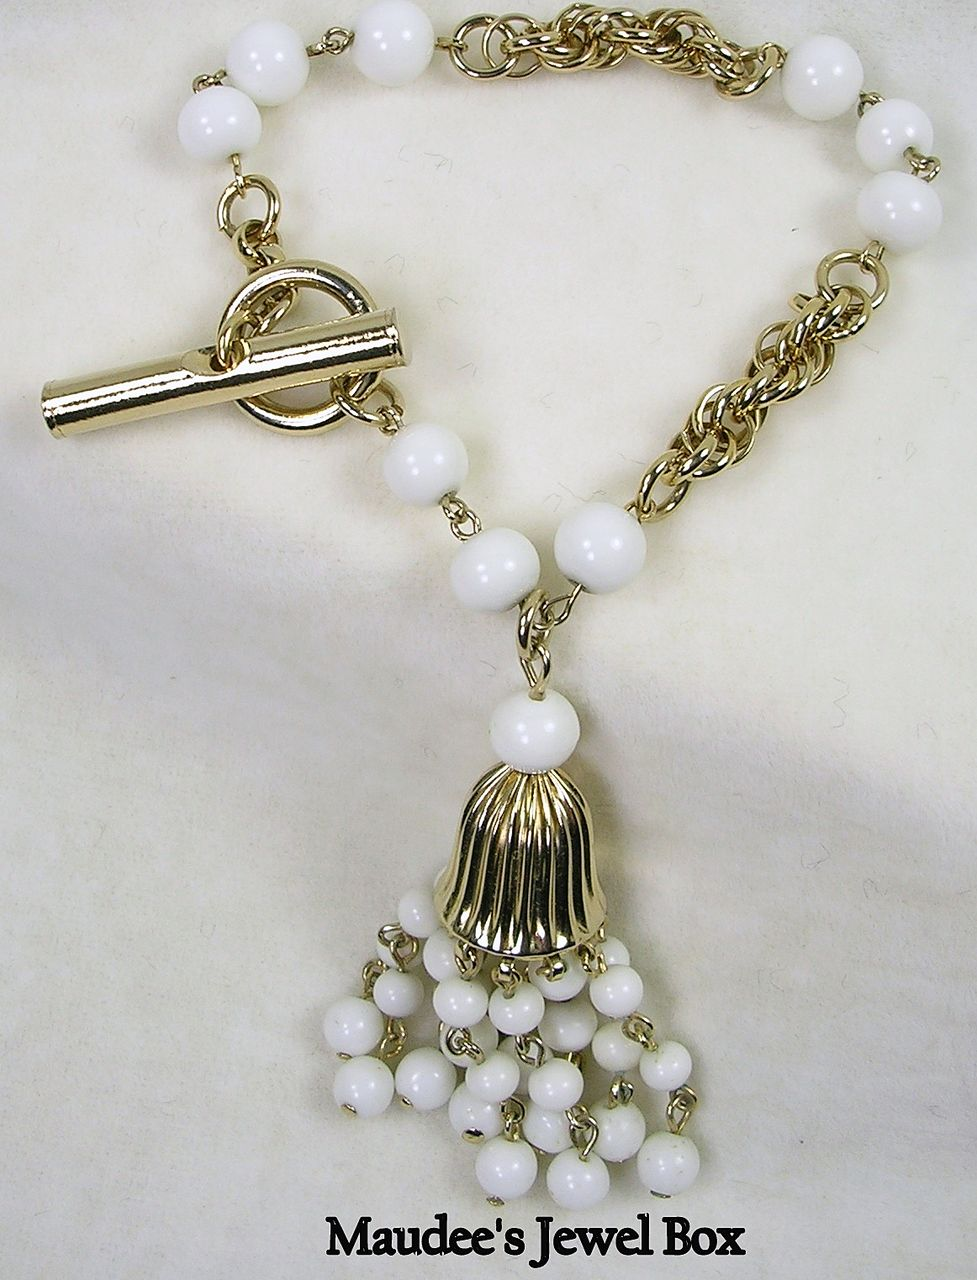 Vintage Milk Glass and Chain Bracelet with Tassel